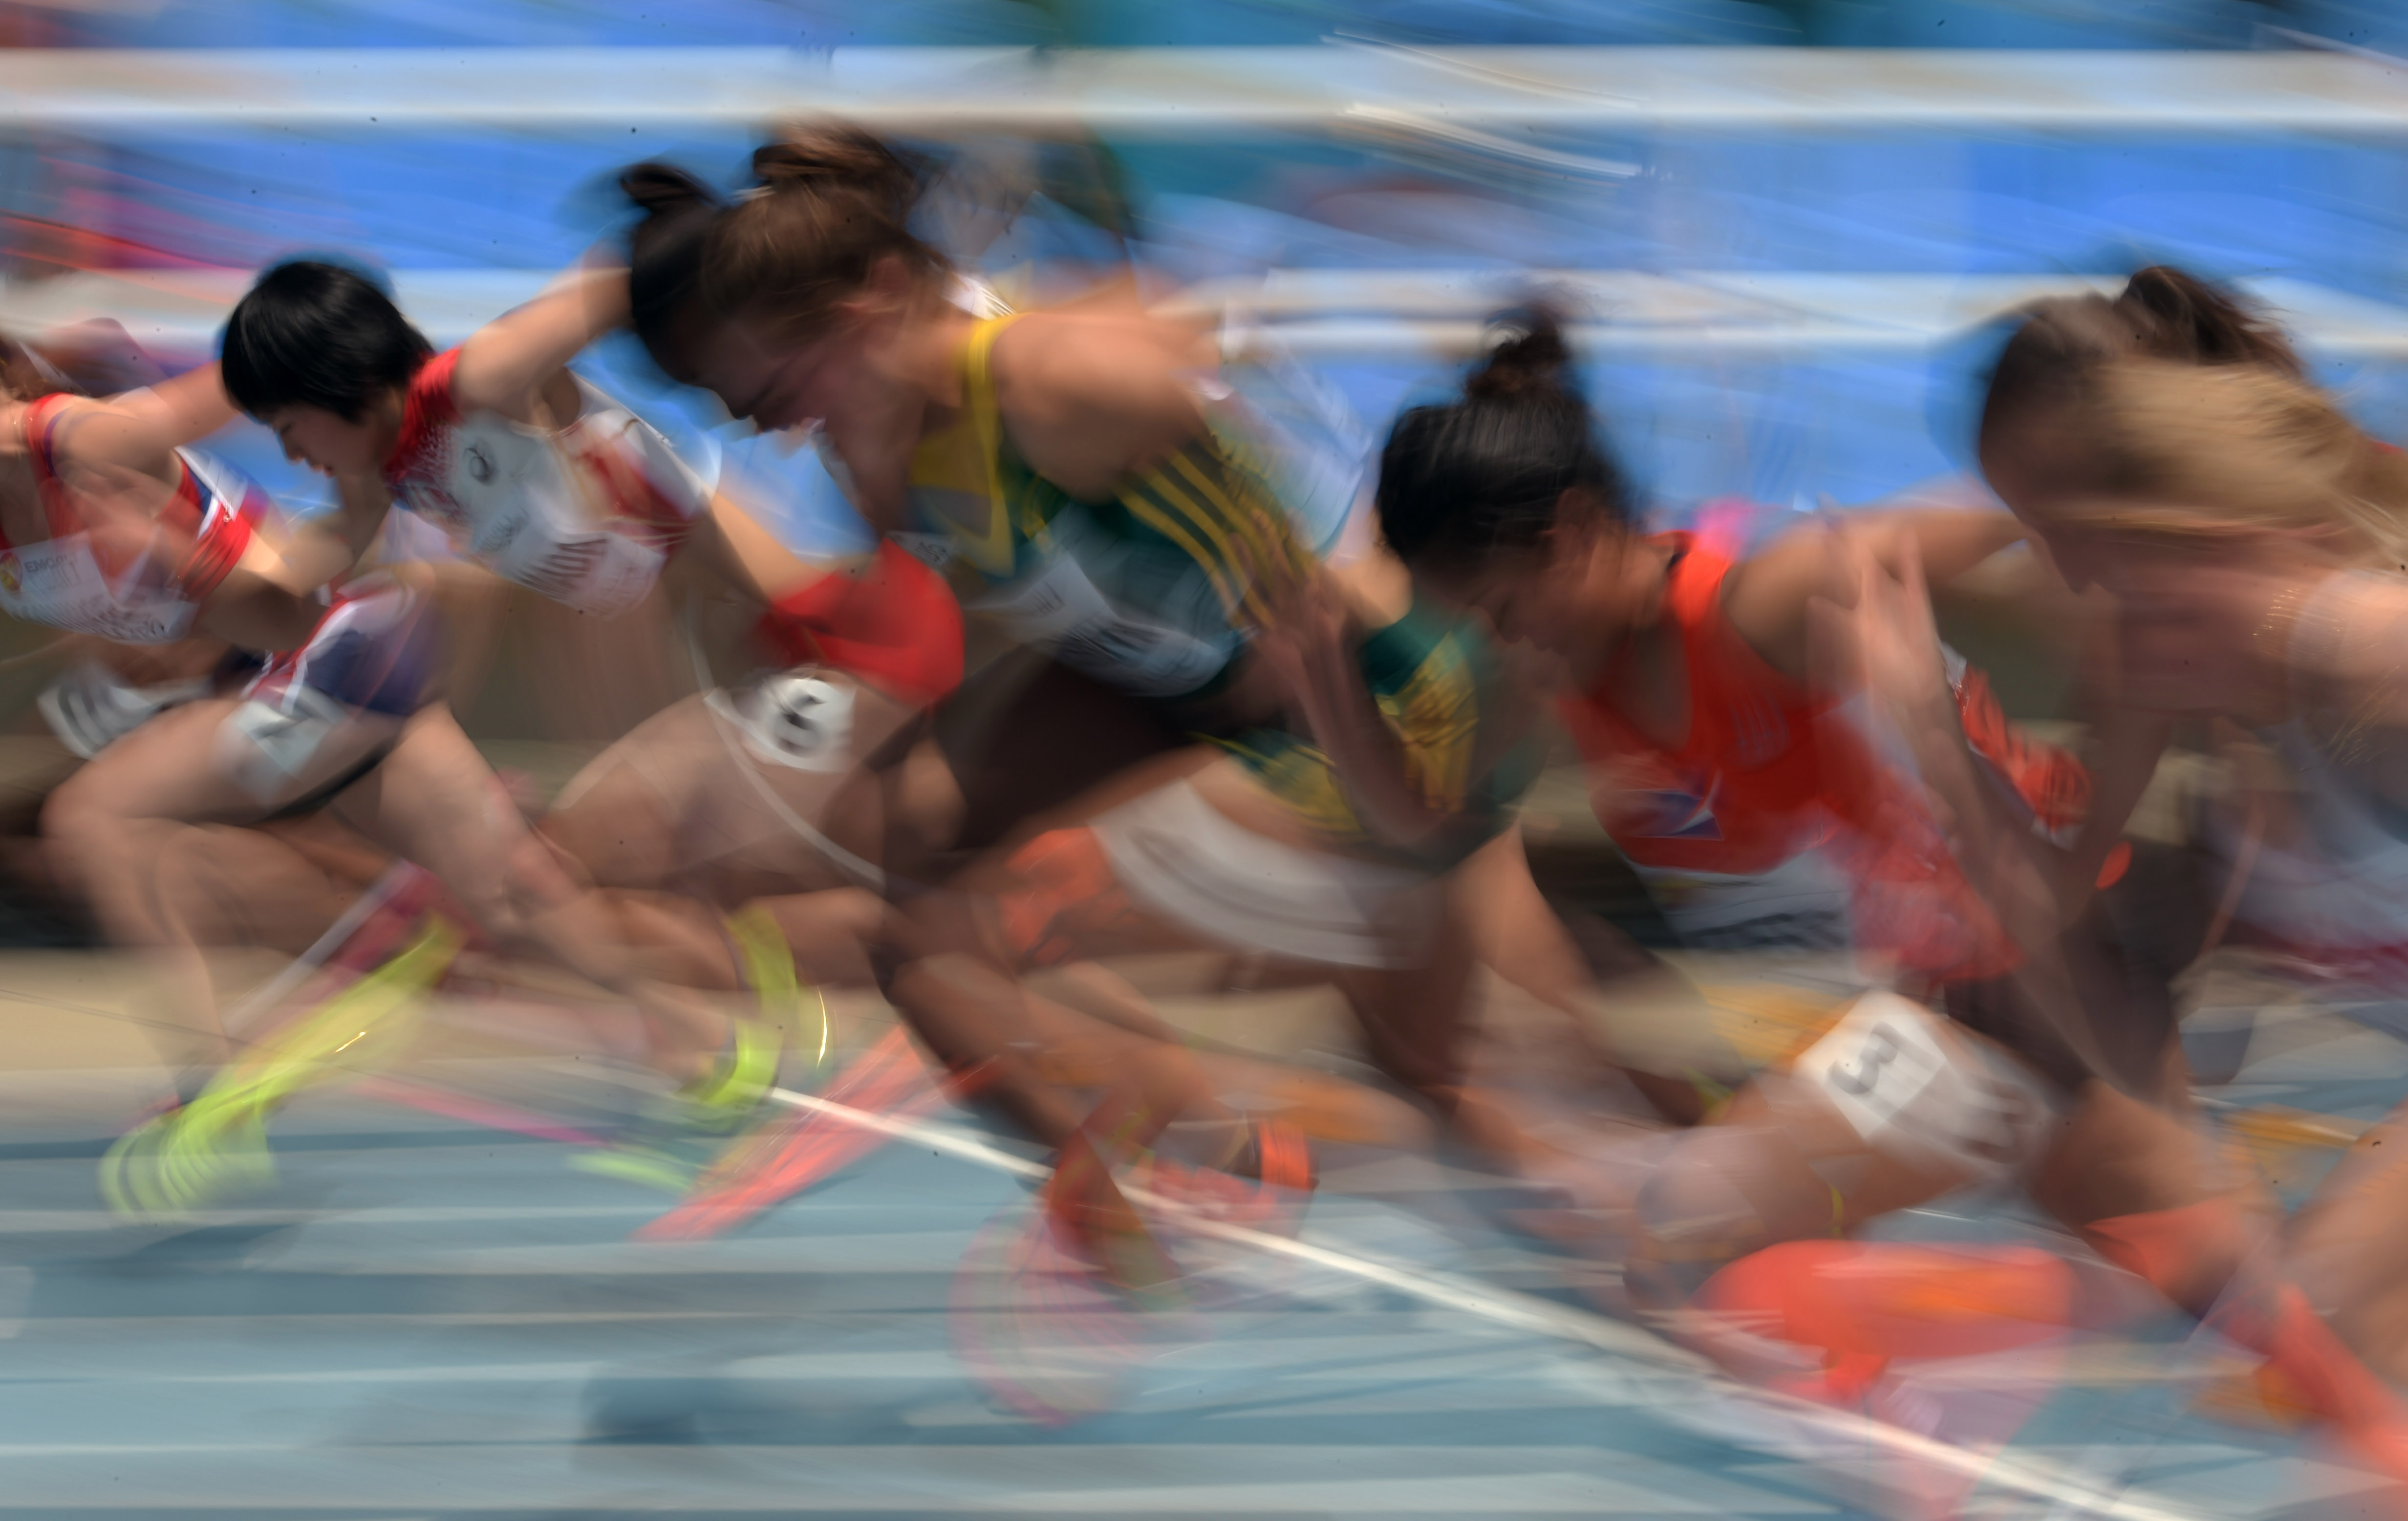 Jul 16, 2015, Cali, Columbia; General view of sprinters in the starting blocks of a womens 100m heat during the 2015 IAAF World Youth Championships at Estadio Olimpico Pascual Guerrero. From left: Helene Ronningen (NOR), Miku Yamada (JPN), Brianne Bethel (BAH), Nicole DeBruyn (RSA), Marlana Cress (MHL), Martina Miroska (HKD) and Arielle Tessier (CAN). Mandatory Credit: Kirby Lee-USA TODAY Sports